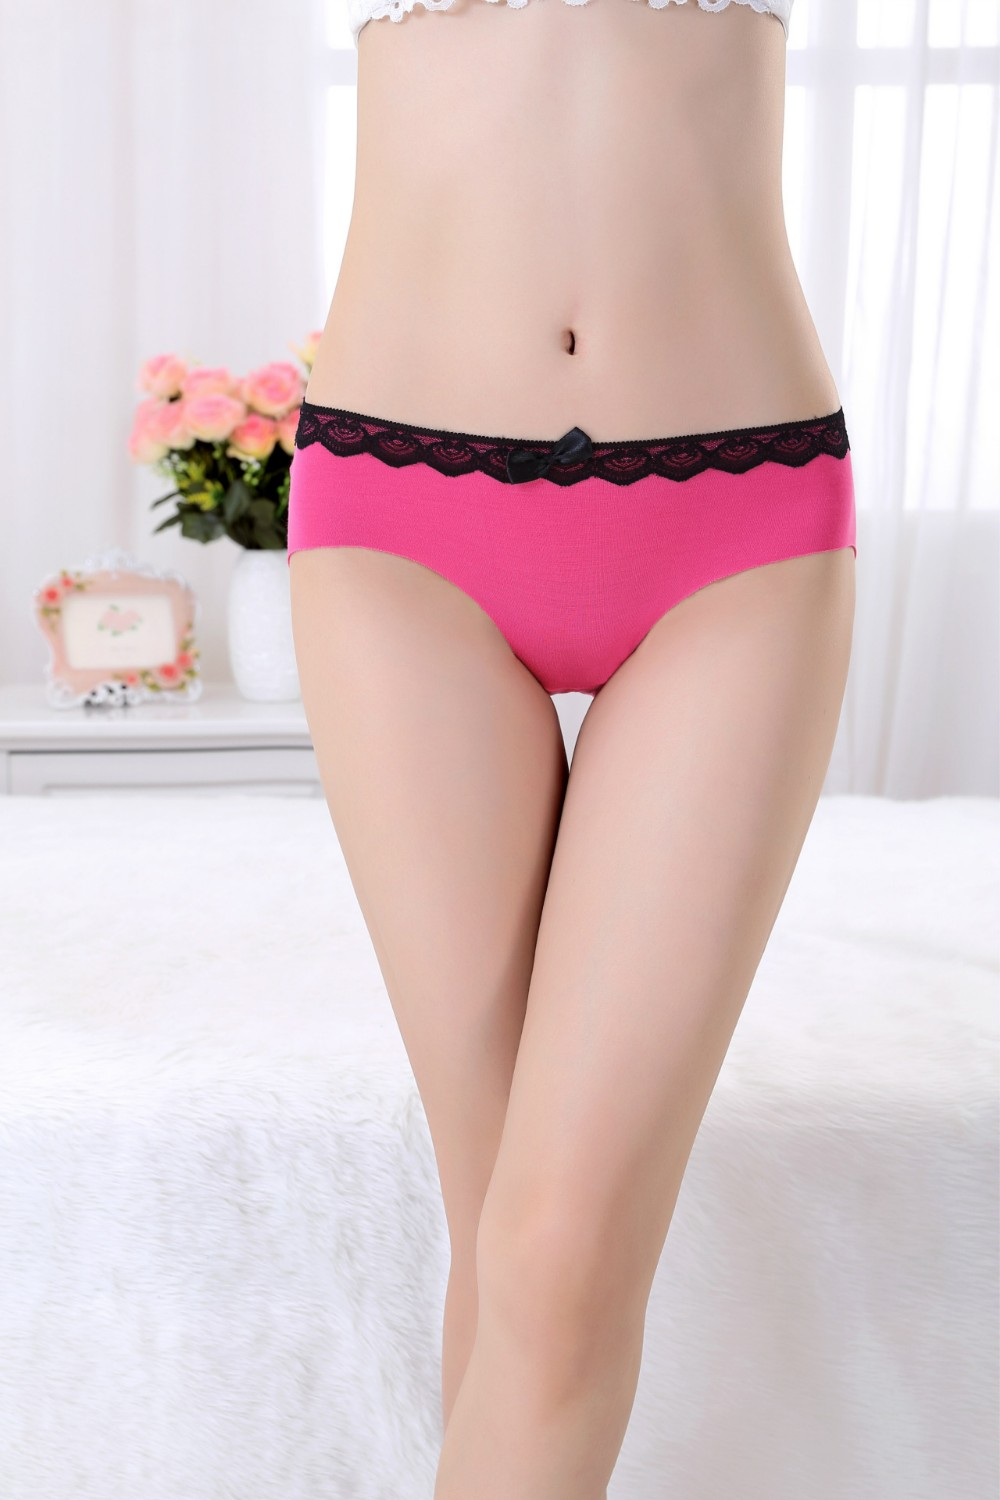 Hottest Young Girls Plain Models Panty Women Sexy Bottom Underwear